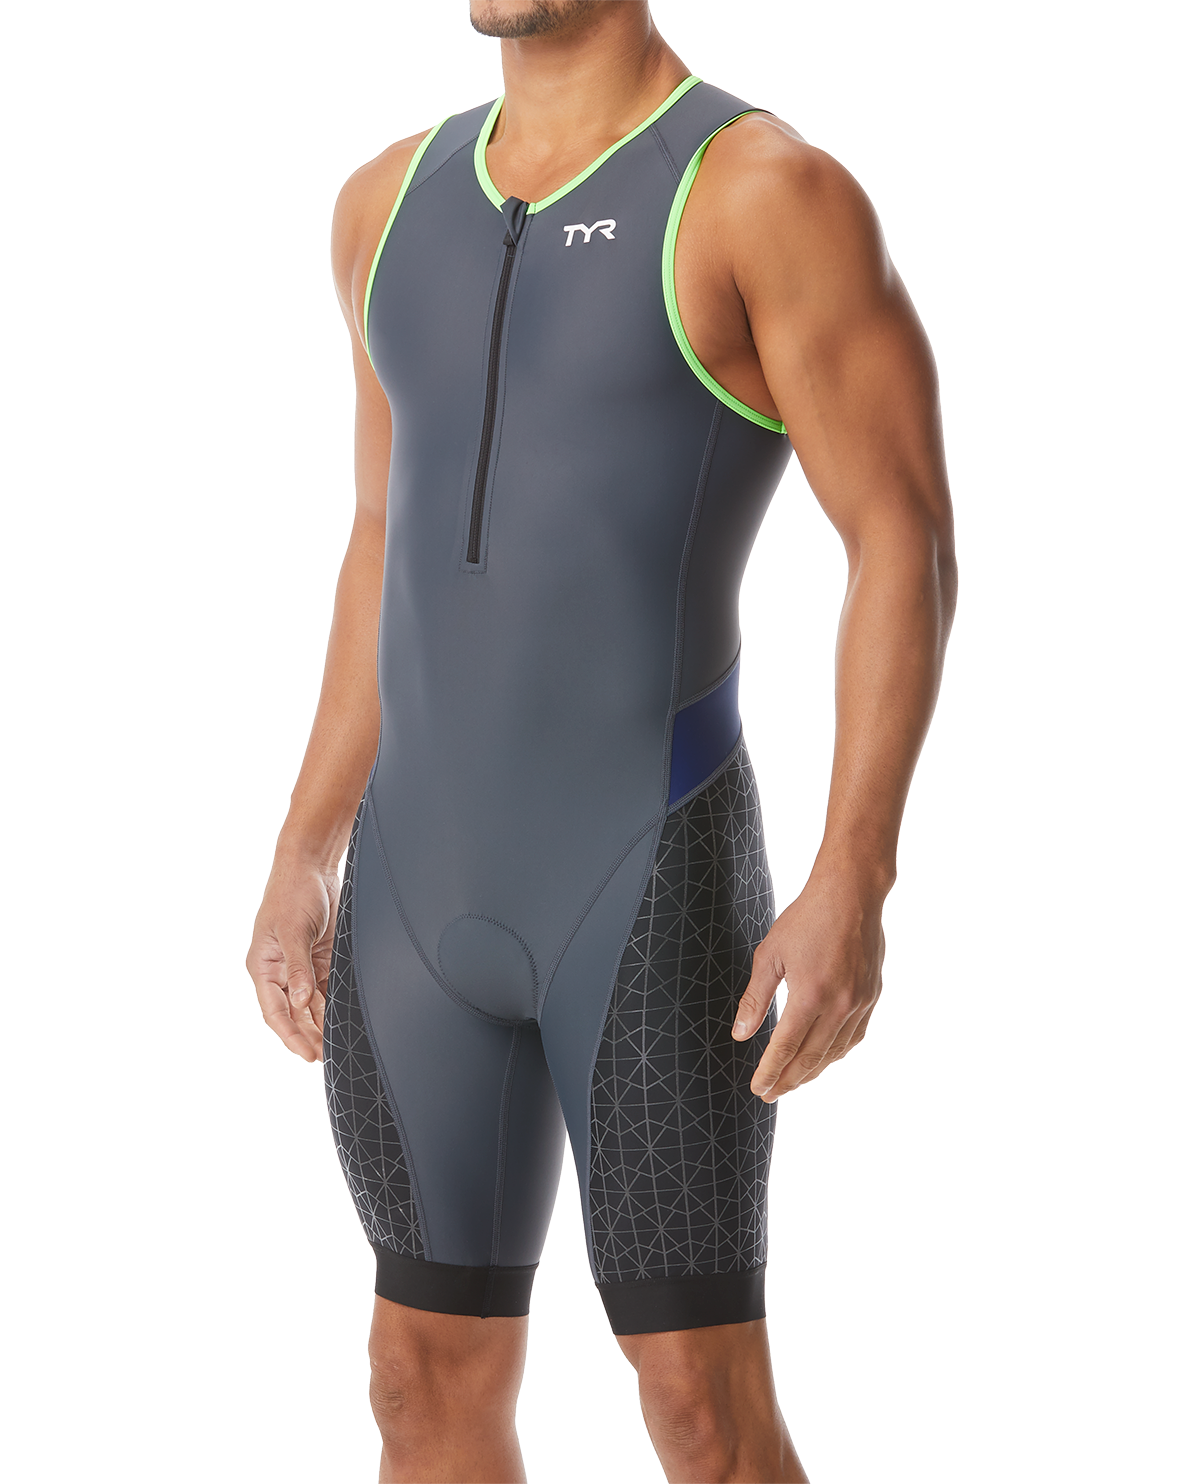 Tyr Men S Competitor Tri Suit